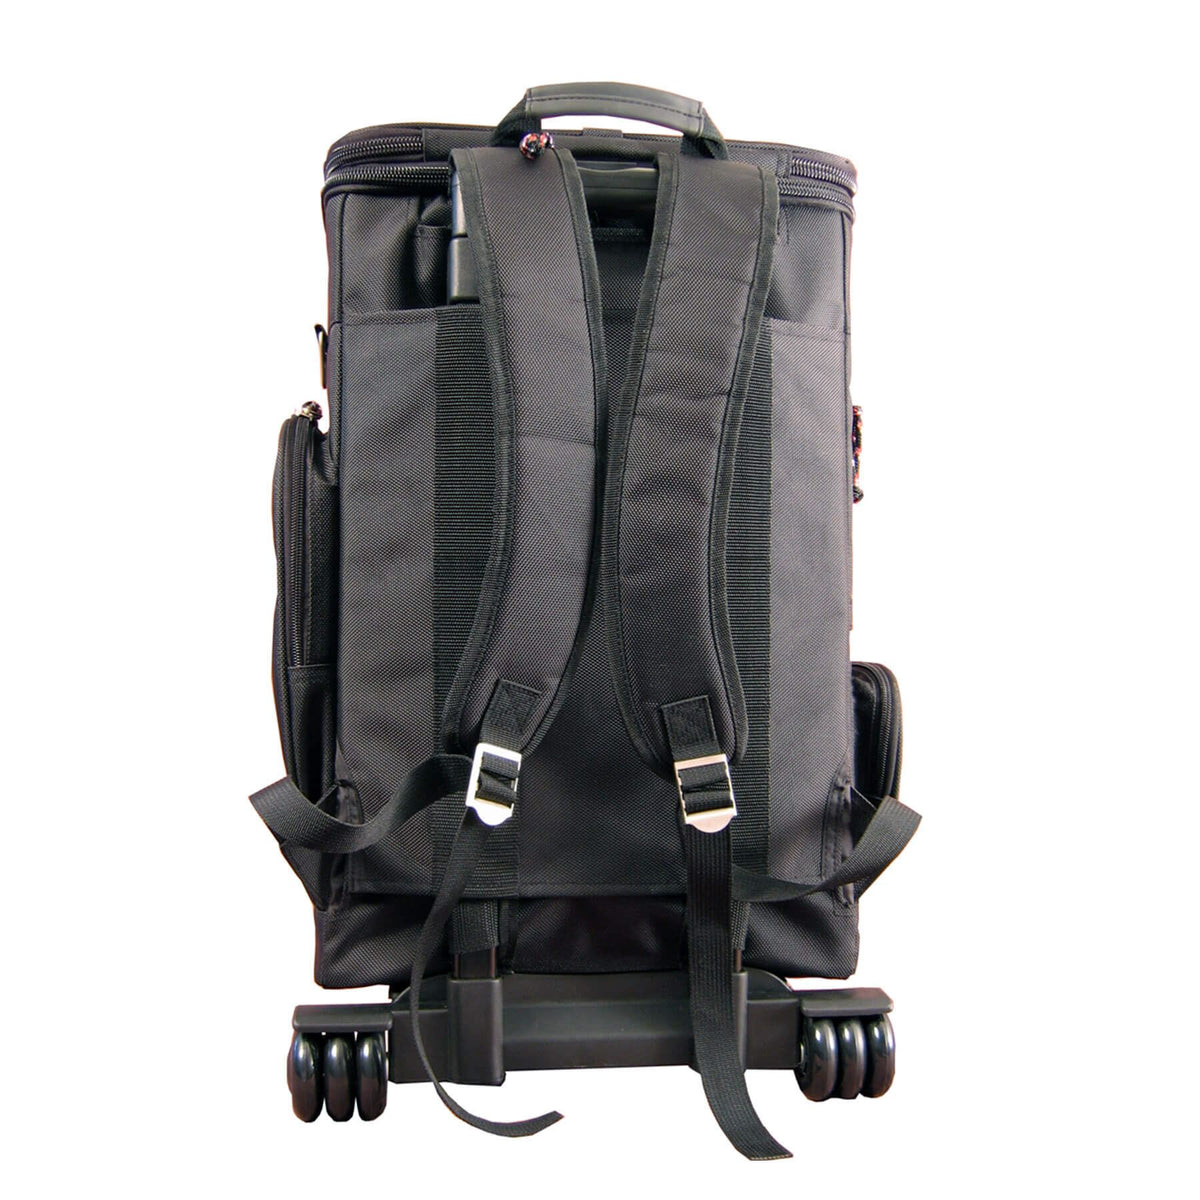 Gator Cases Gear & Laptop Backpack fits Line 6 TONEPORT KB37